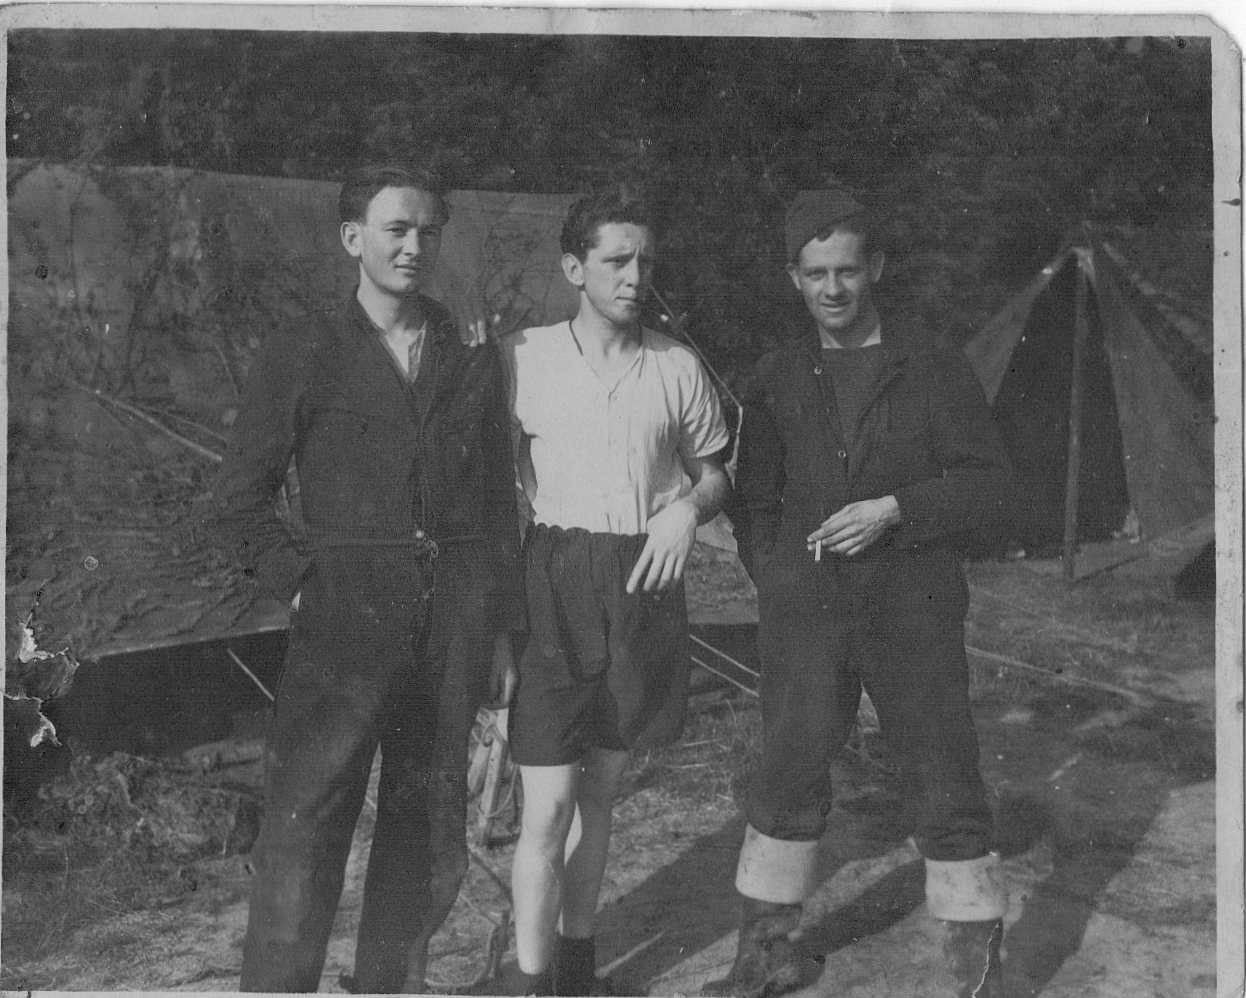 Normandy July 1944, Dad on right